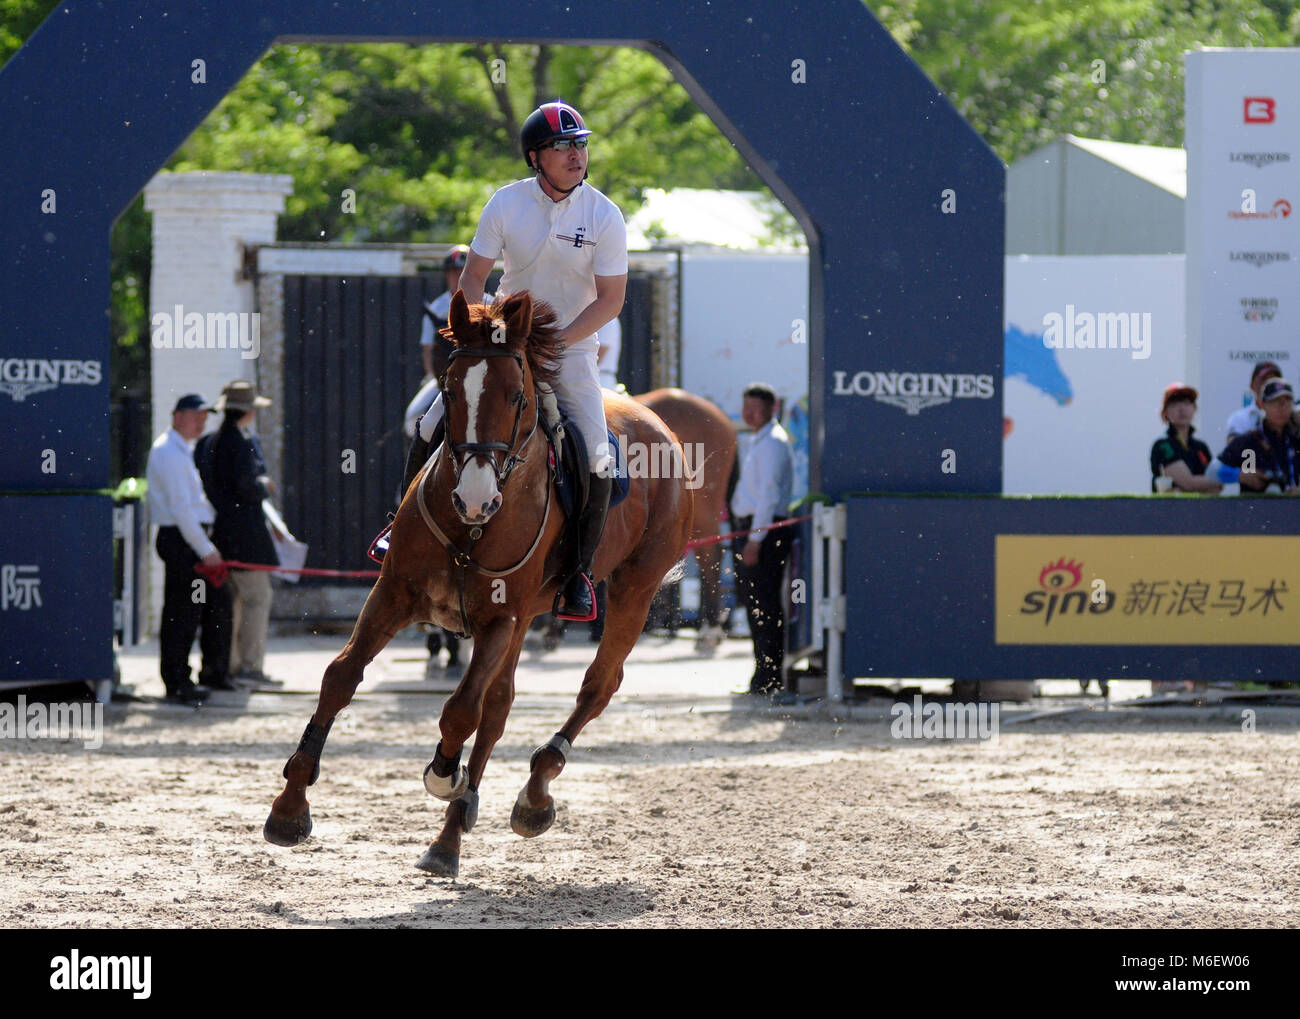 A horse and rider compete at the FEI jumping event in Chaoyang park, Beijing, China, in October 2017 Stock Photo